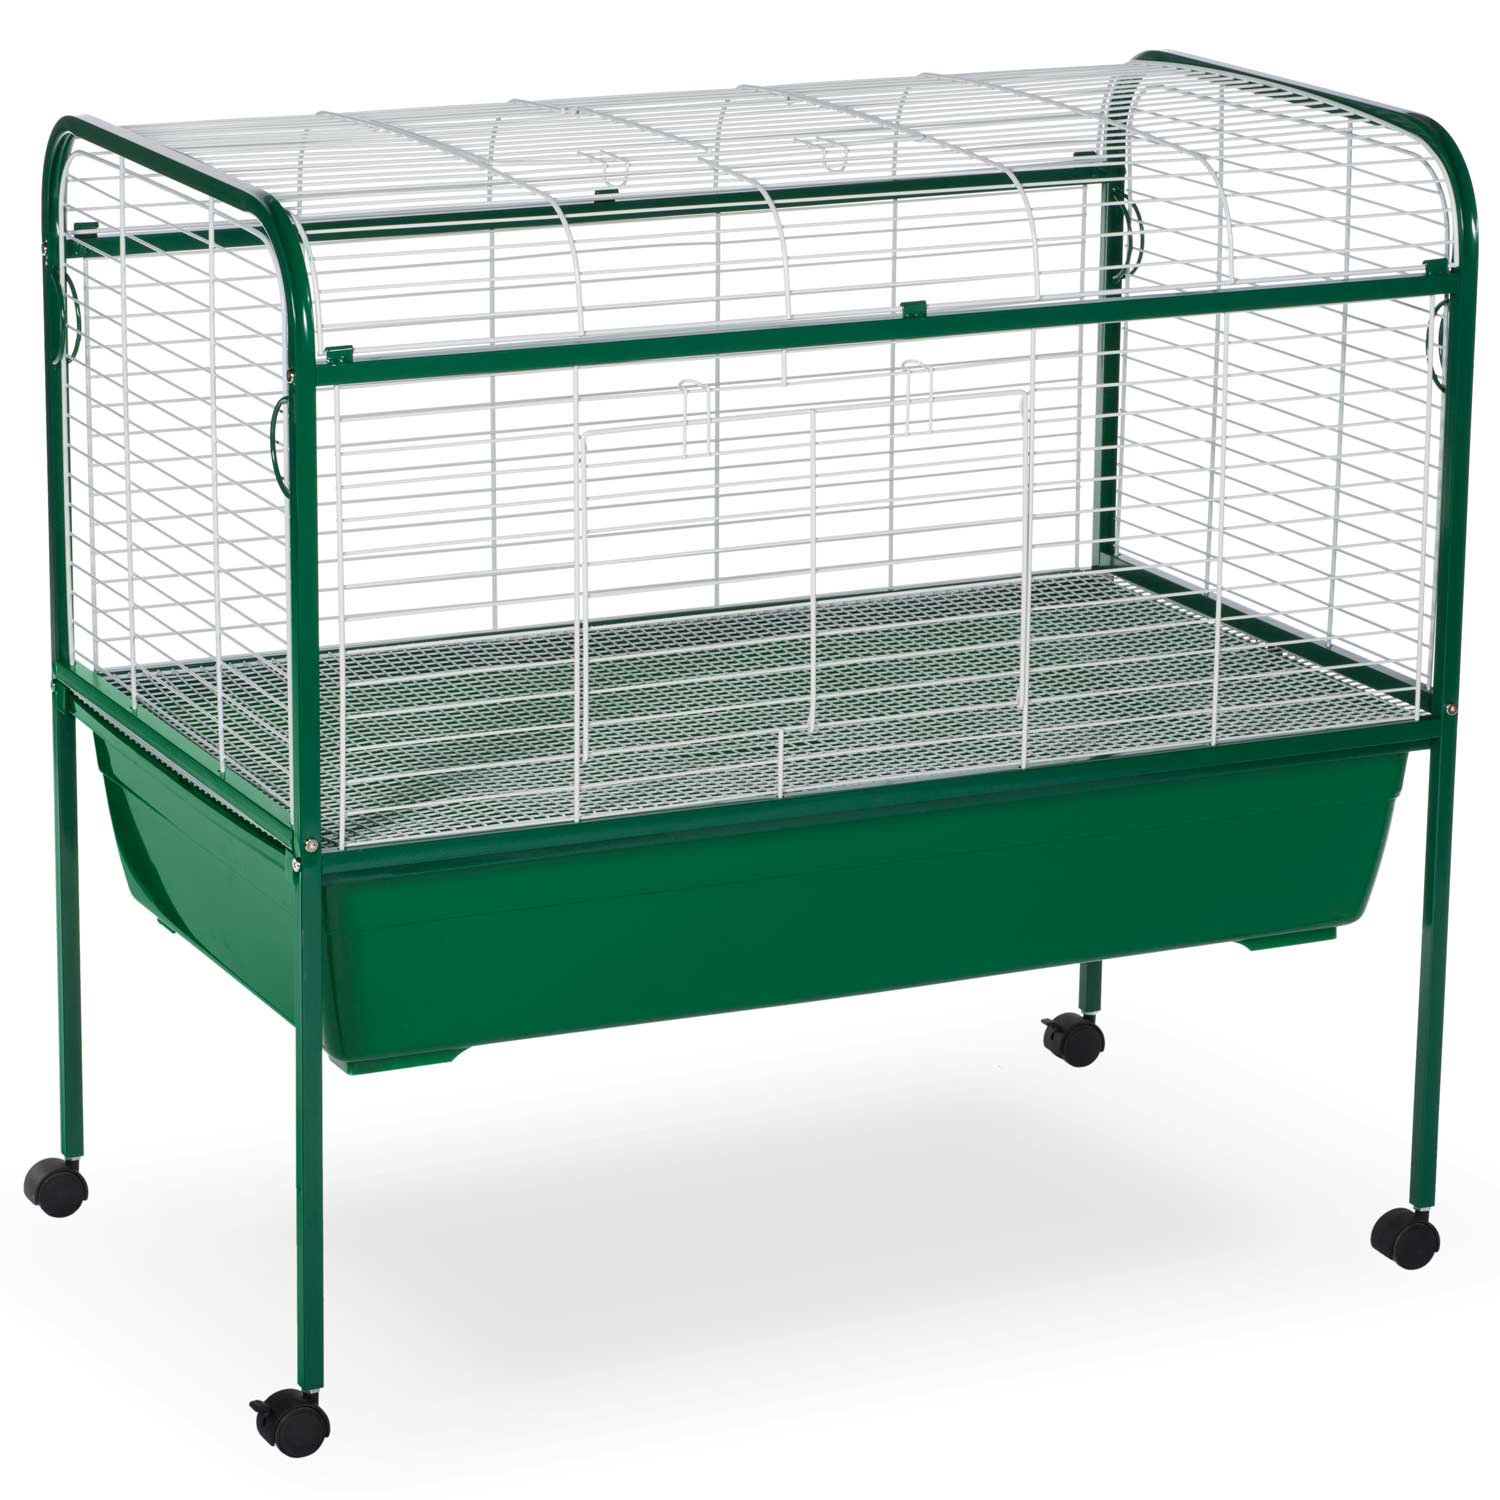 Prevue hendryx green white small animal cage with stand for Small guinea pig cages for sale